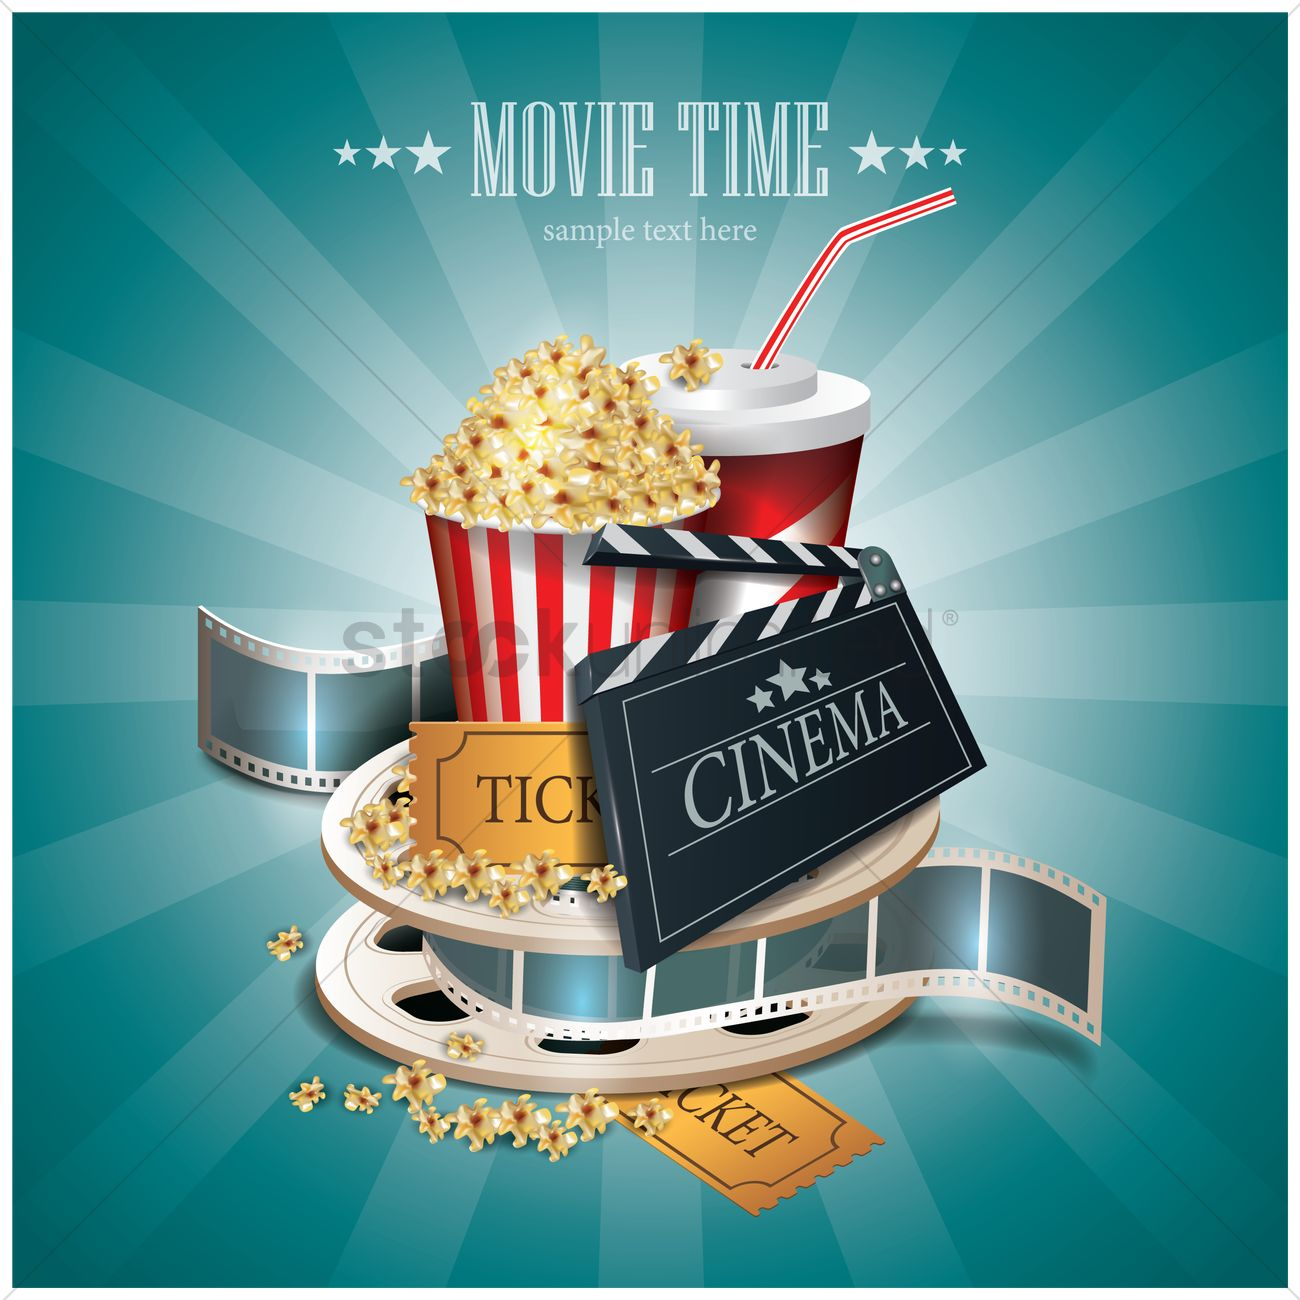 MOVIE TIME - Buy this stock vector and explore similar